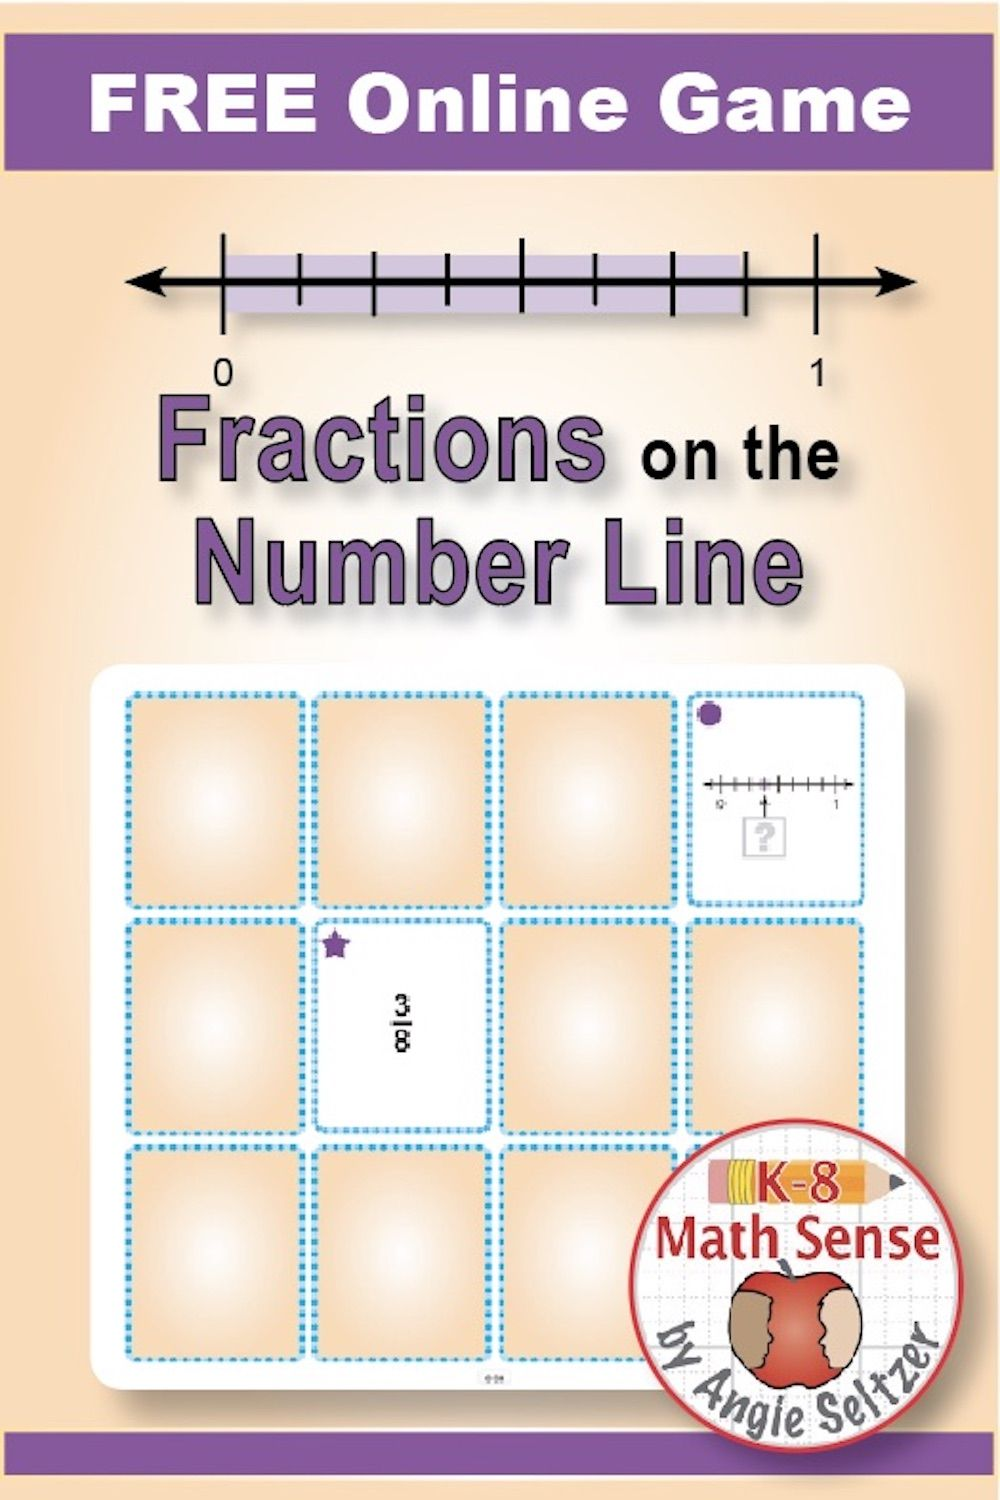 FRACTIONS ON THE NUMBER LINE. These FREE online cards